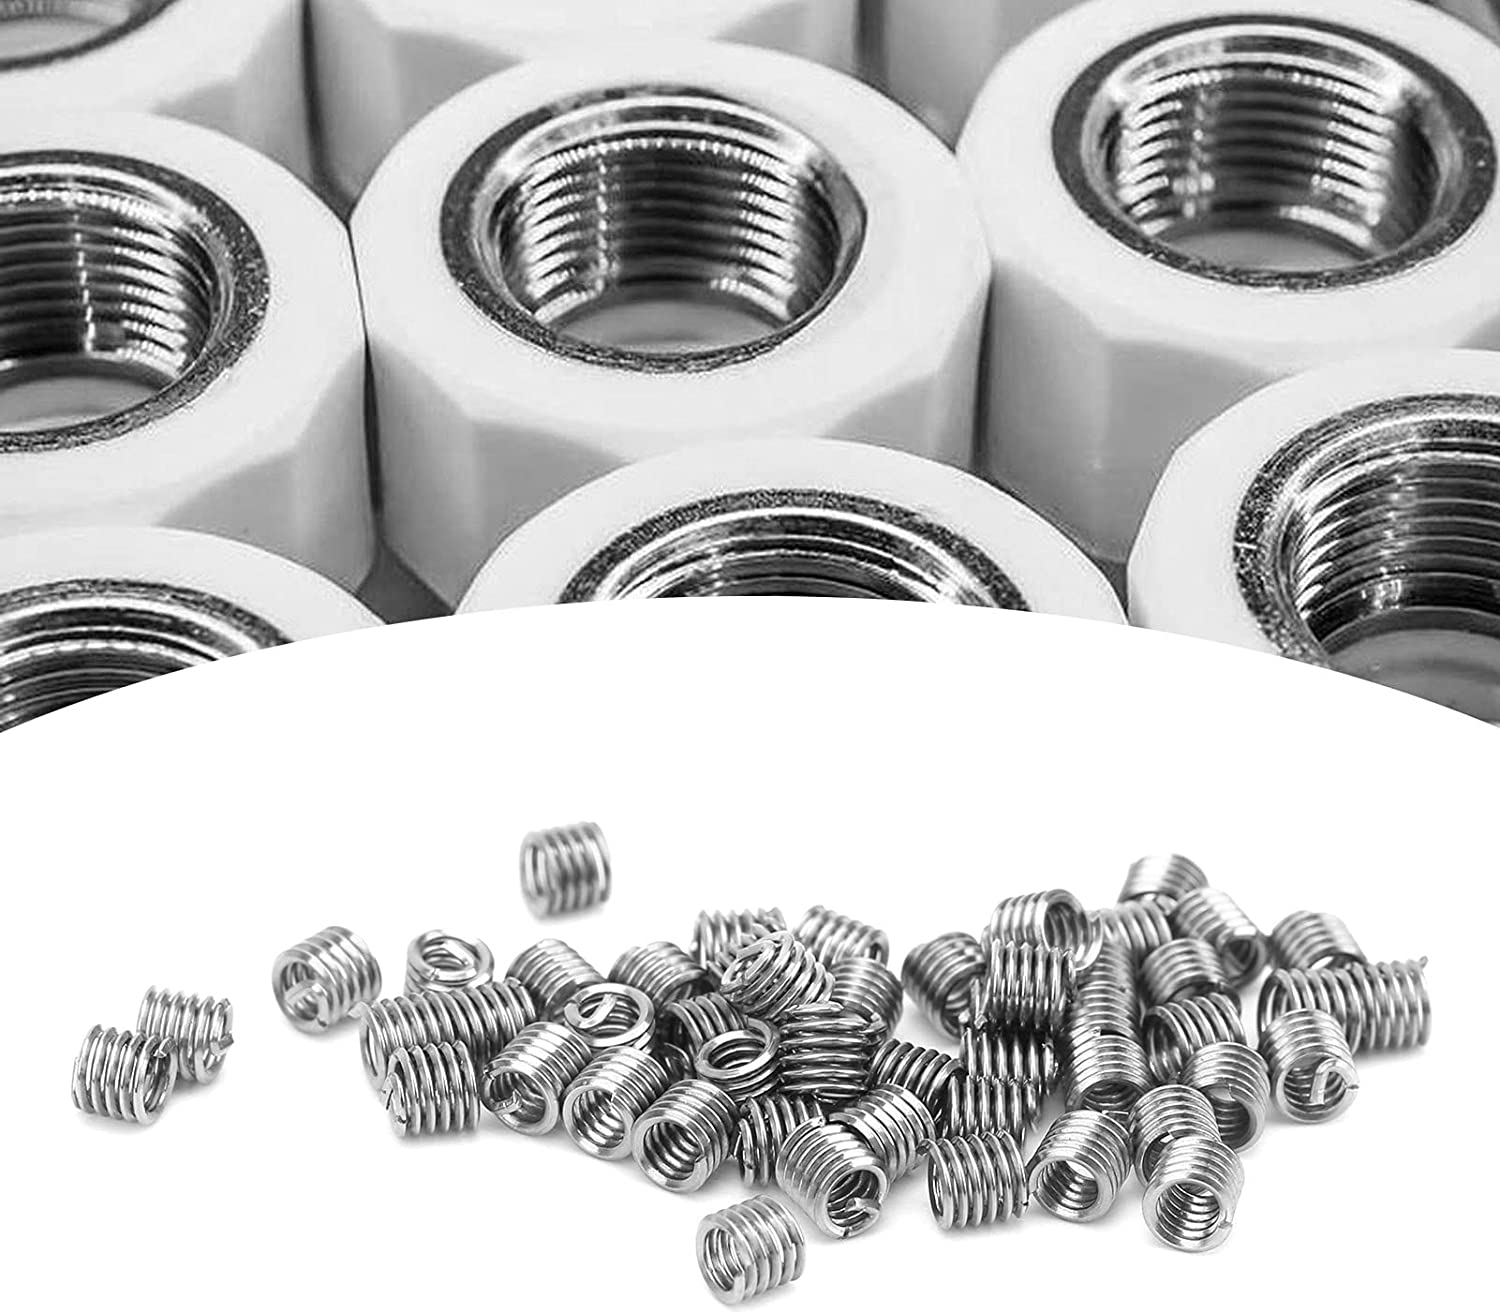 Thread Socket Not Easy Deform Steel 40% OFF Cheap Sale Popular overseas Stainless To